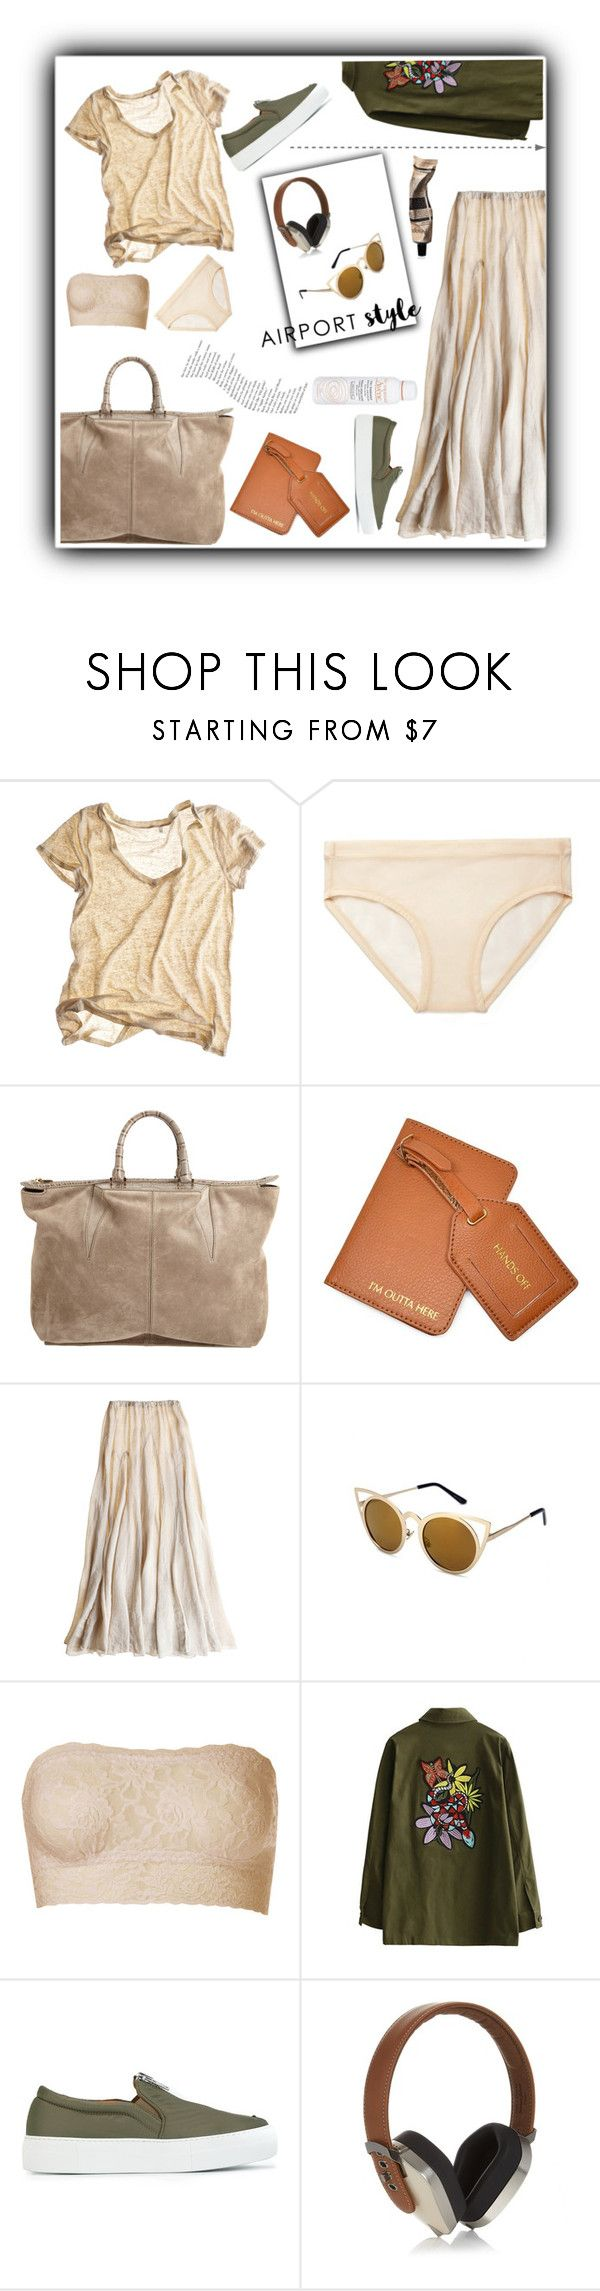 """airport style"" by denisse-ponce ❤ liked on Polyvore featuring Calypso St. Barth, Acne Studios, Alexander Wang, Botkier, CP Shades, Hanky Panky, Avène, Joshua's, Pryma and Aesop"